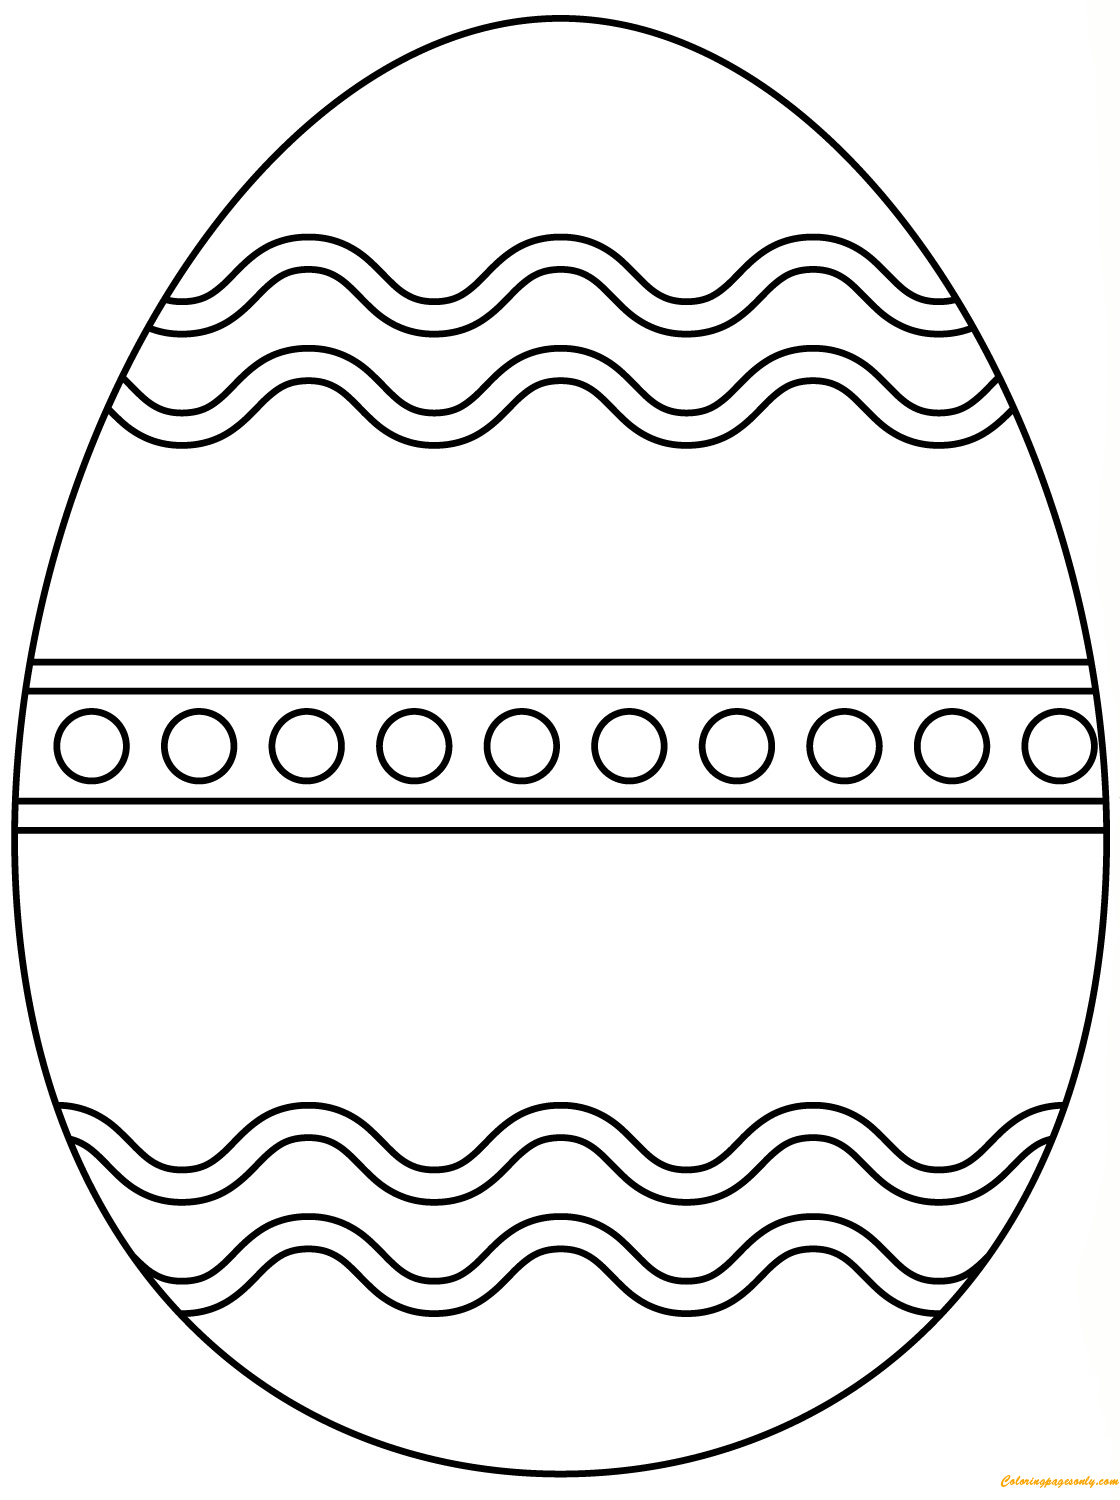 Plain Easter Egg Coloring Pages   Arts & Culture Coloring Pages ...